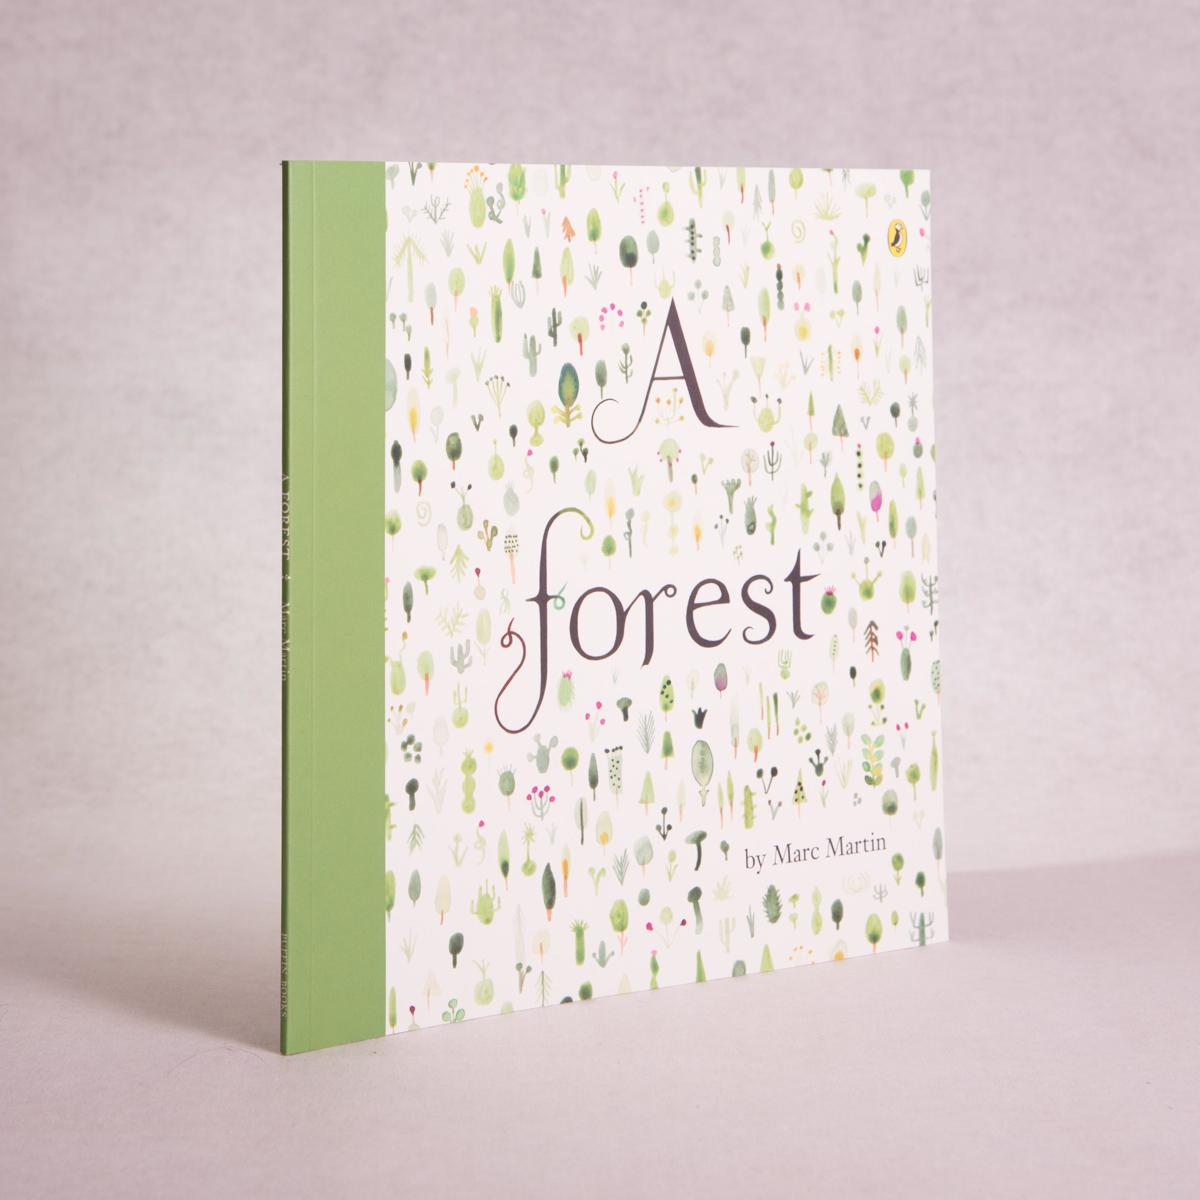 A Forest | By Marc Martin - Book - Throw Some Seeds - Australian gardening gifts and eco products online!